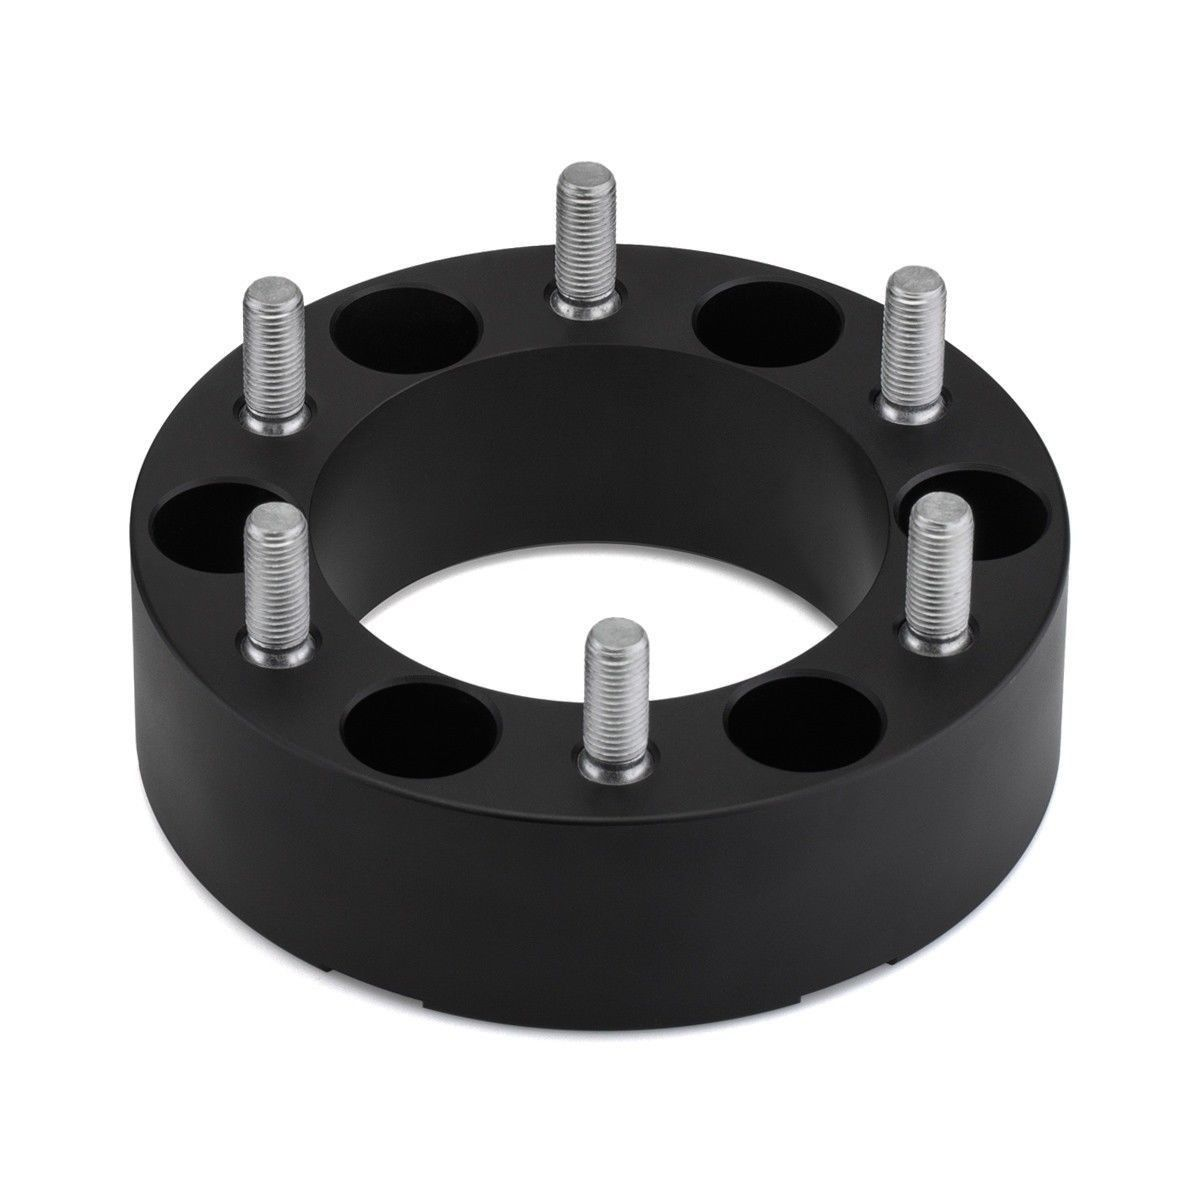 2006-2010 Hummer H3 2WD 4WD Lug-Centric Wheel Spacer (4pc)